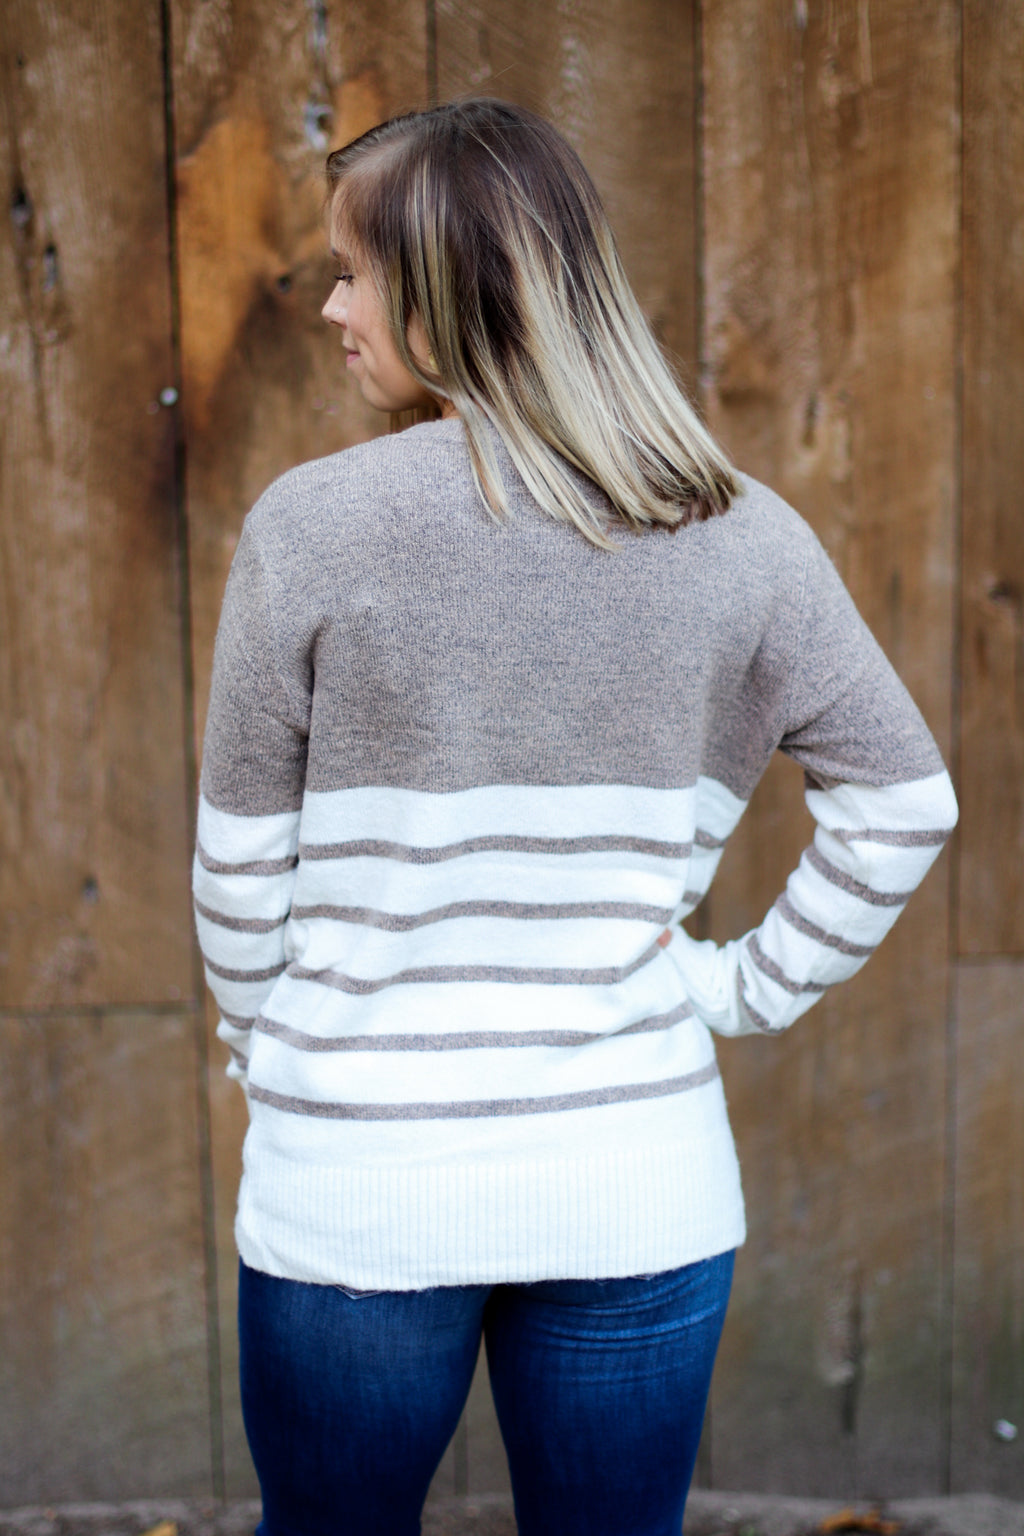 Coffee Date Sweater in Latte